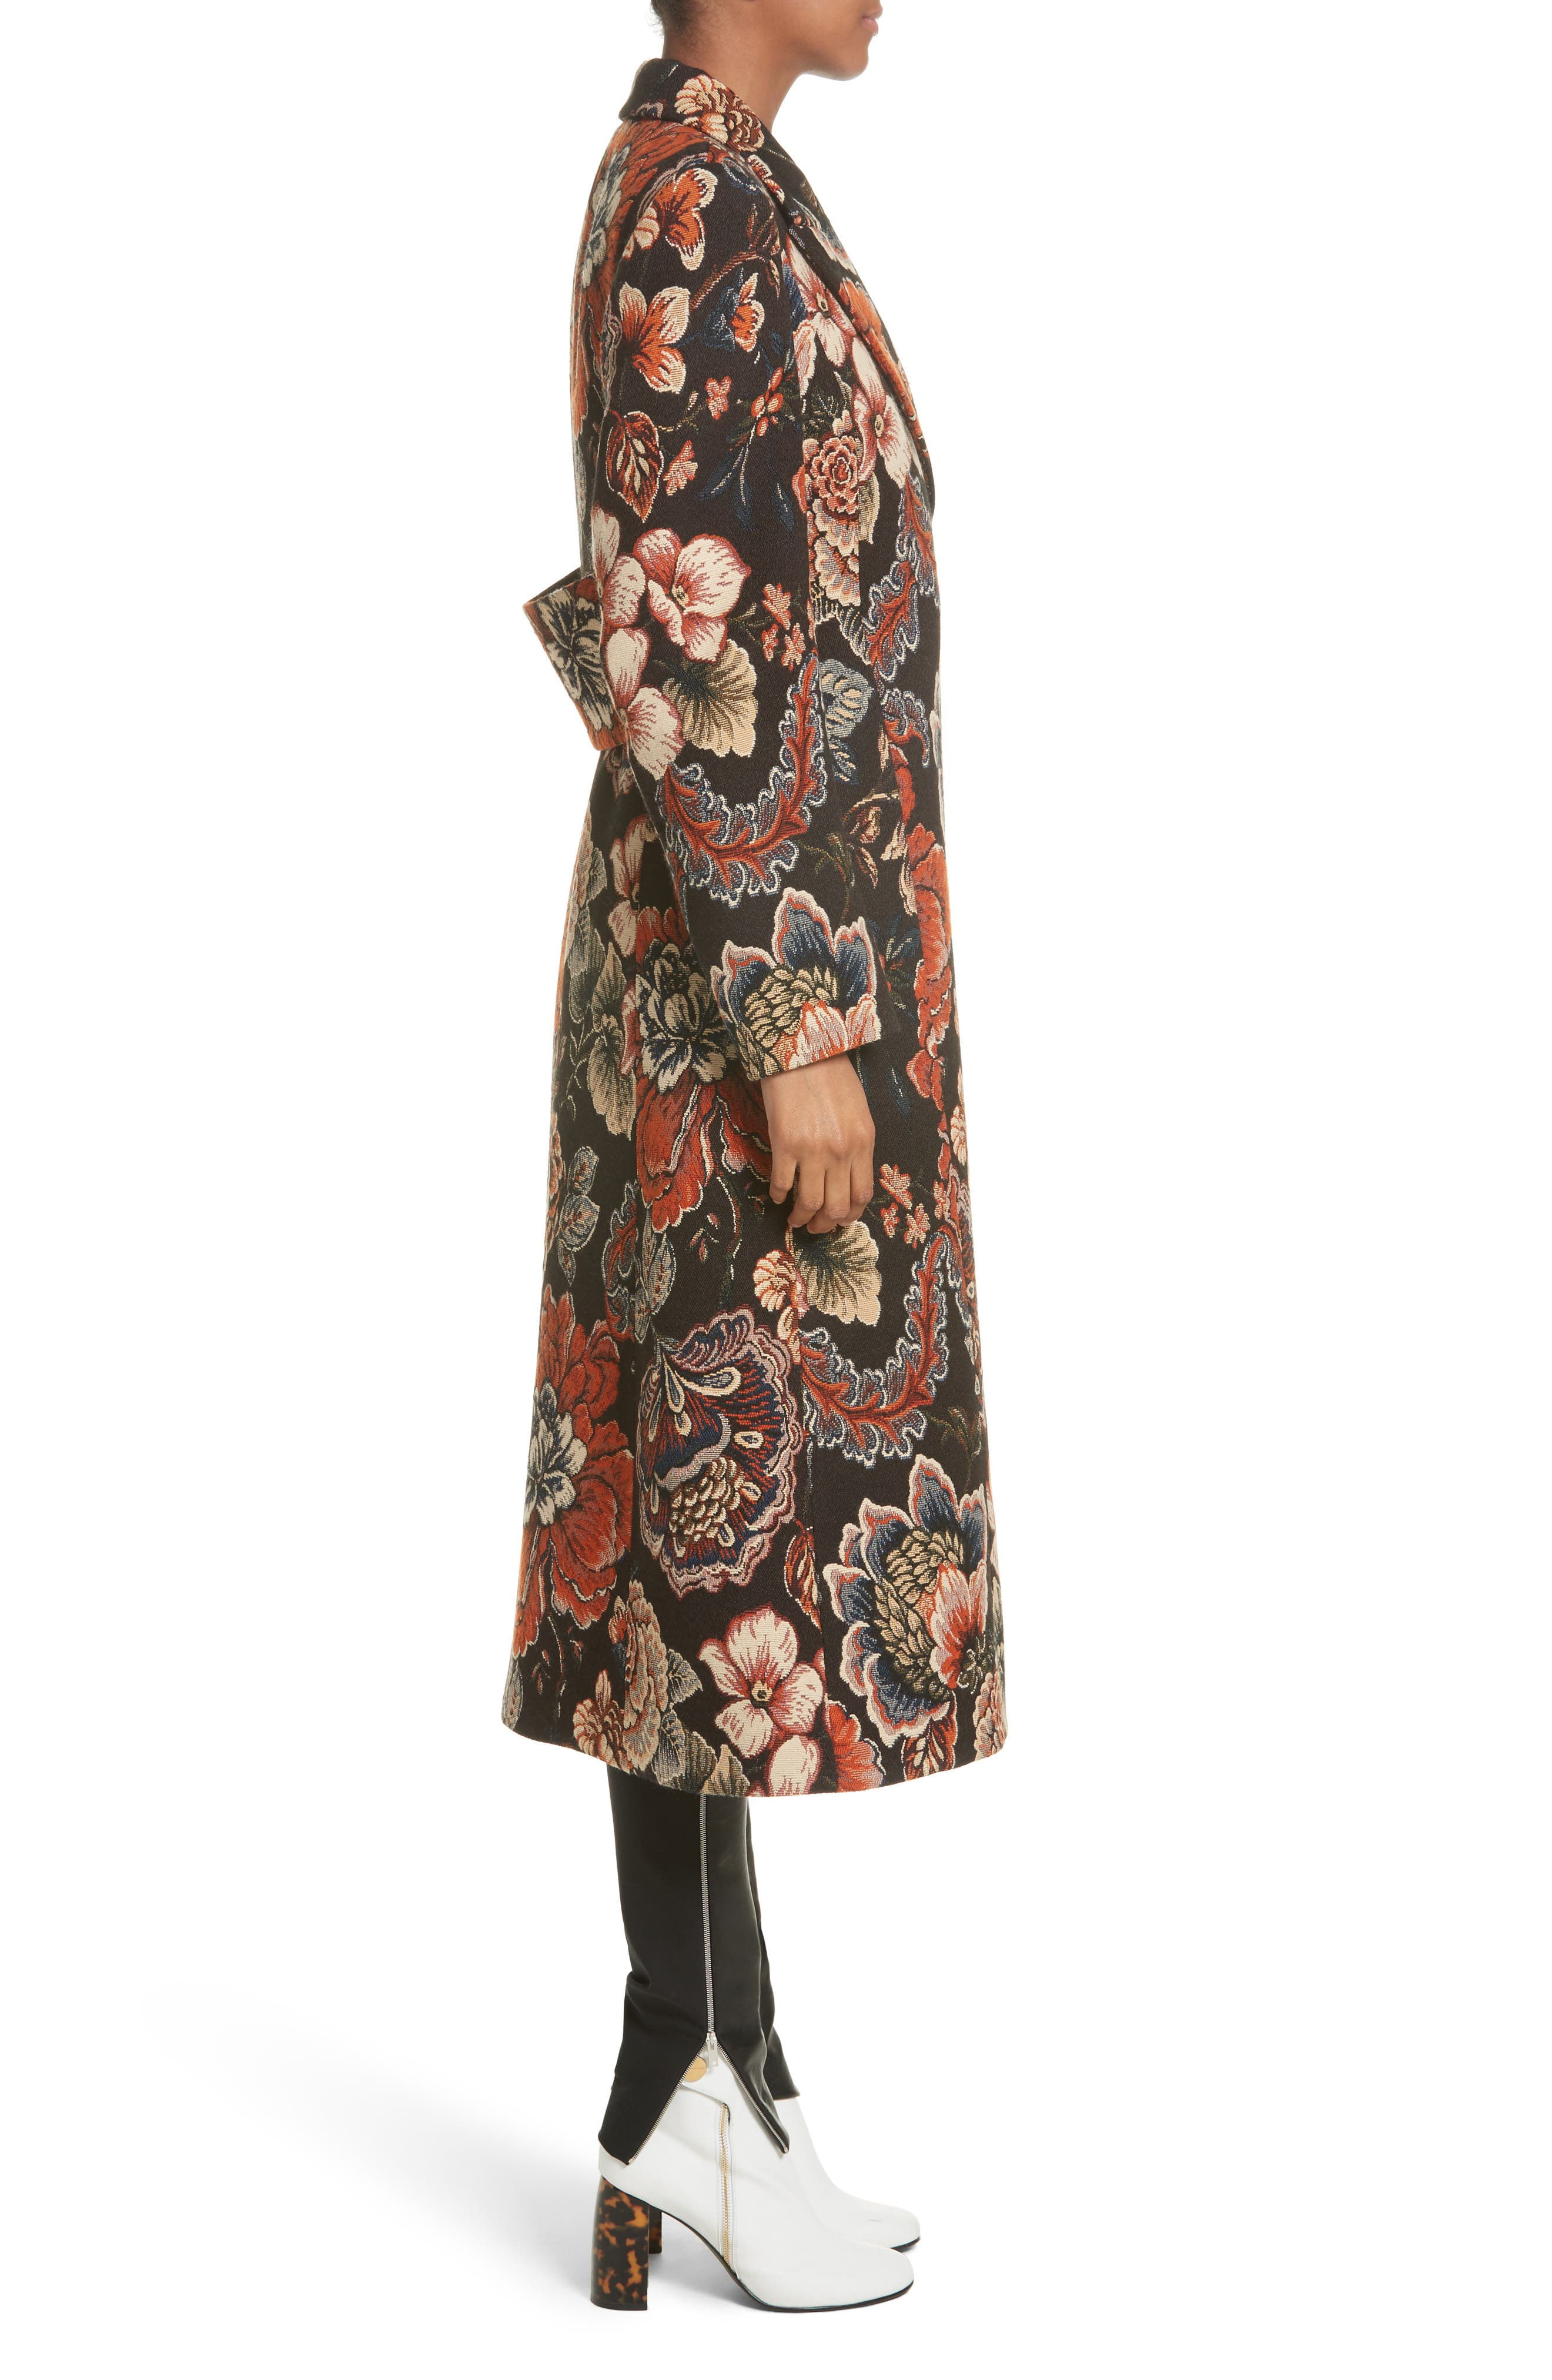 STELLA MCCARTNEY, Floral Tapestry Long Coat, Alternate thumbnail 3, color, 960